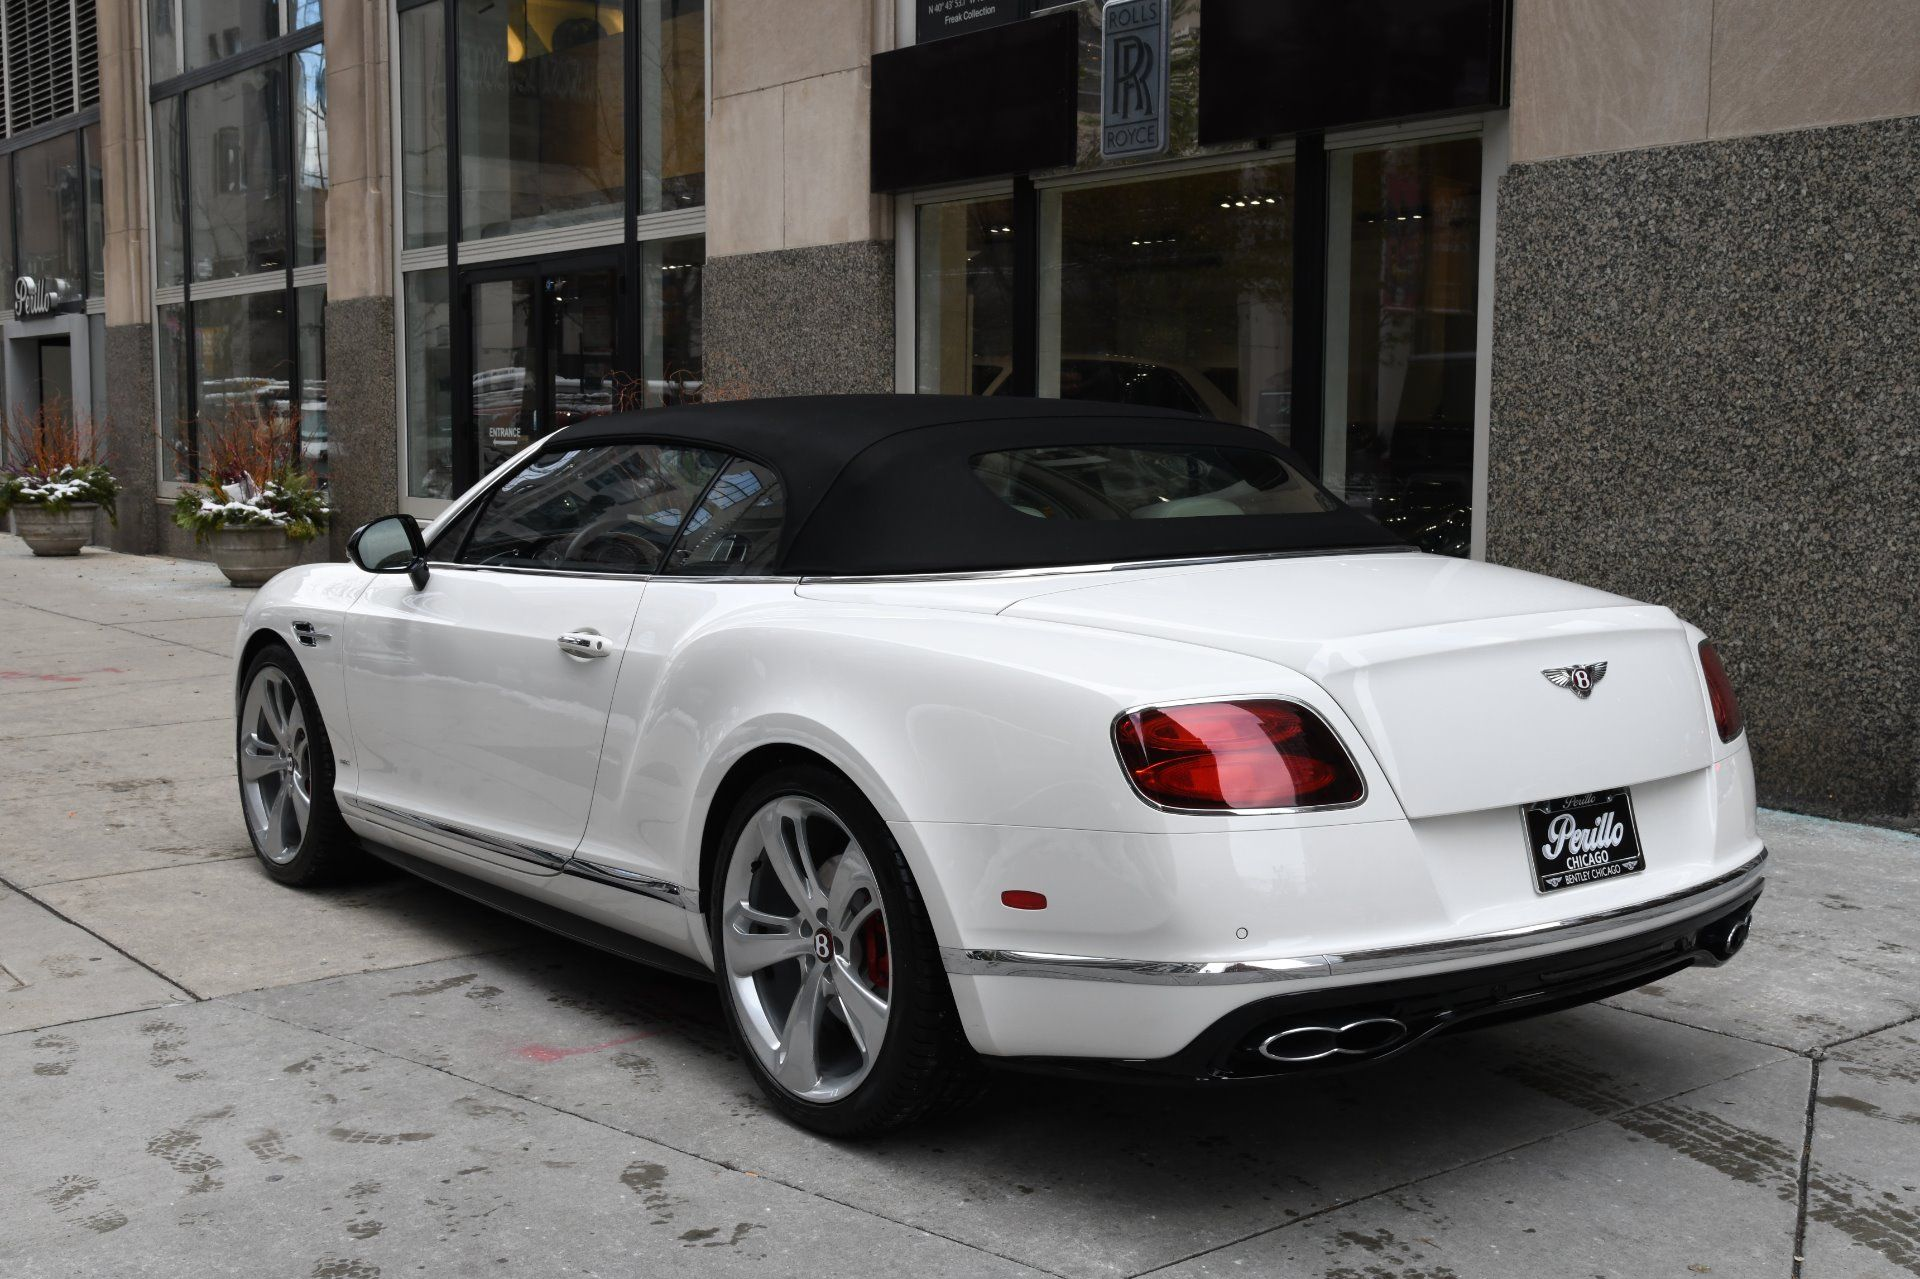 Used 2017 Bentley Continental Gtc V8 S Gtc V8 S Chicago Il Bentley Continental Luxury Car Dealership Luxury Cars